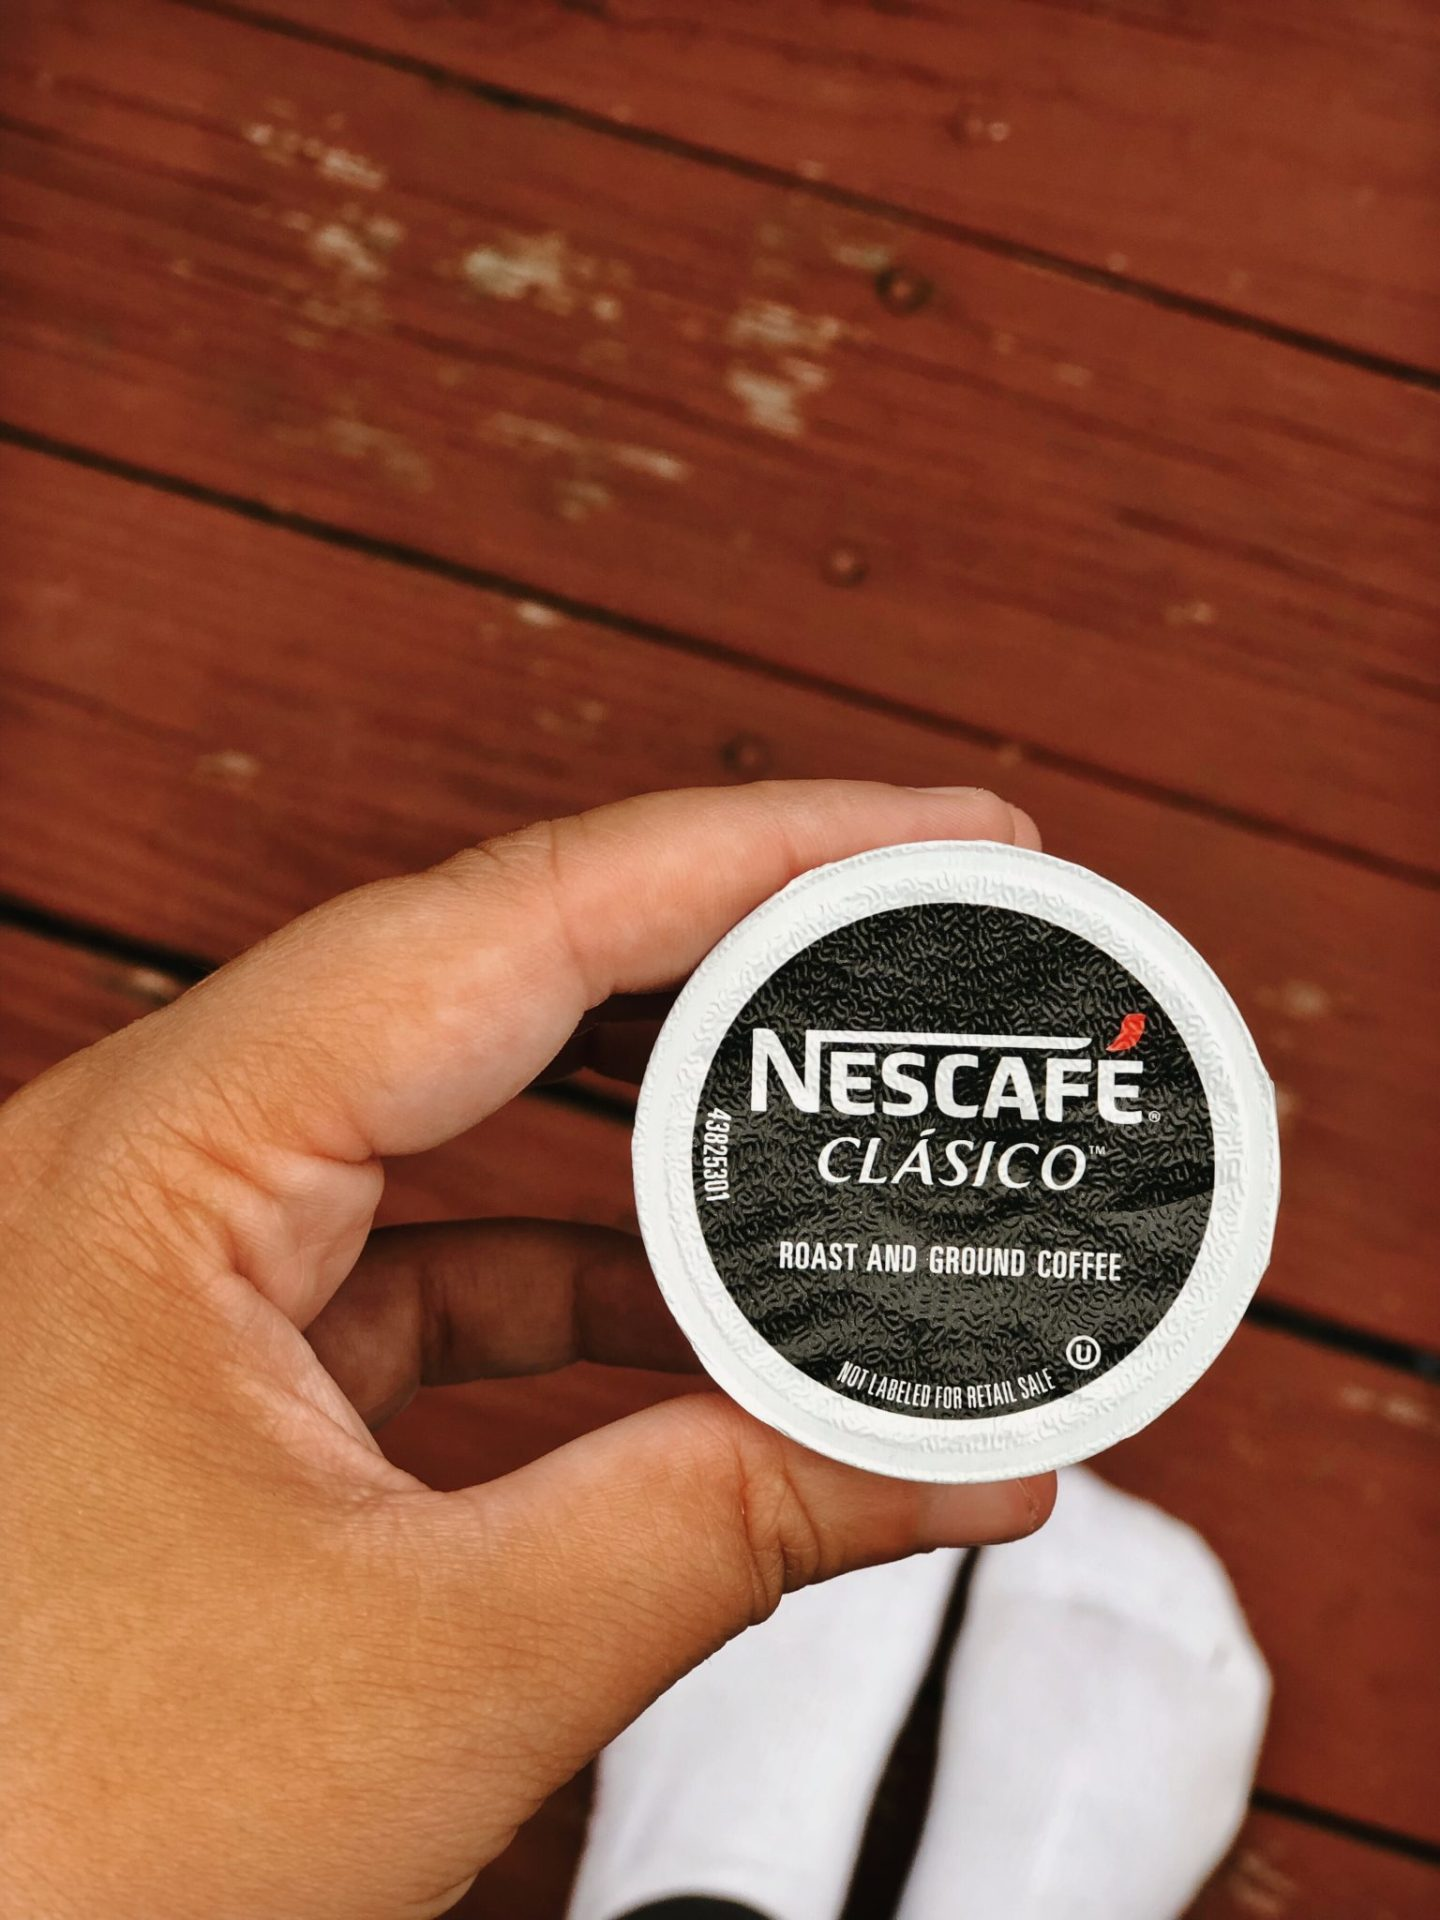 Nescafe Clasico for mornings